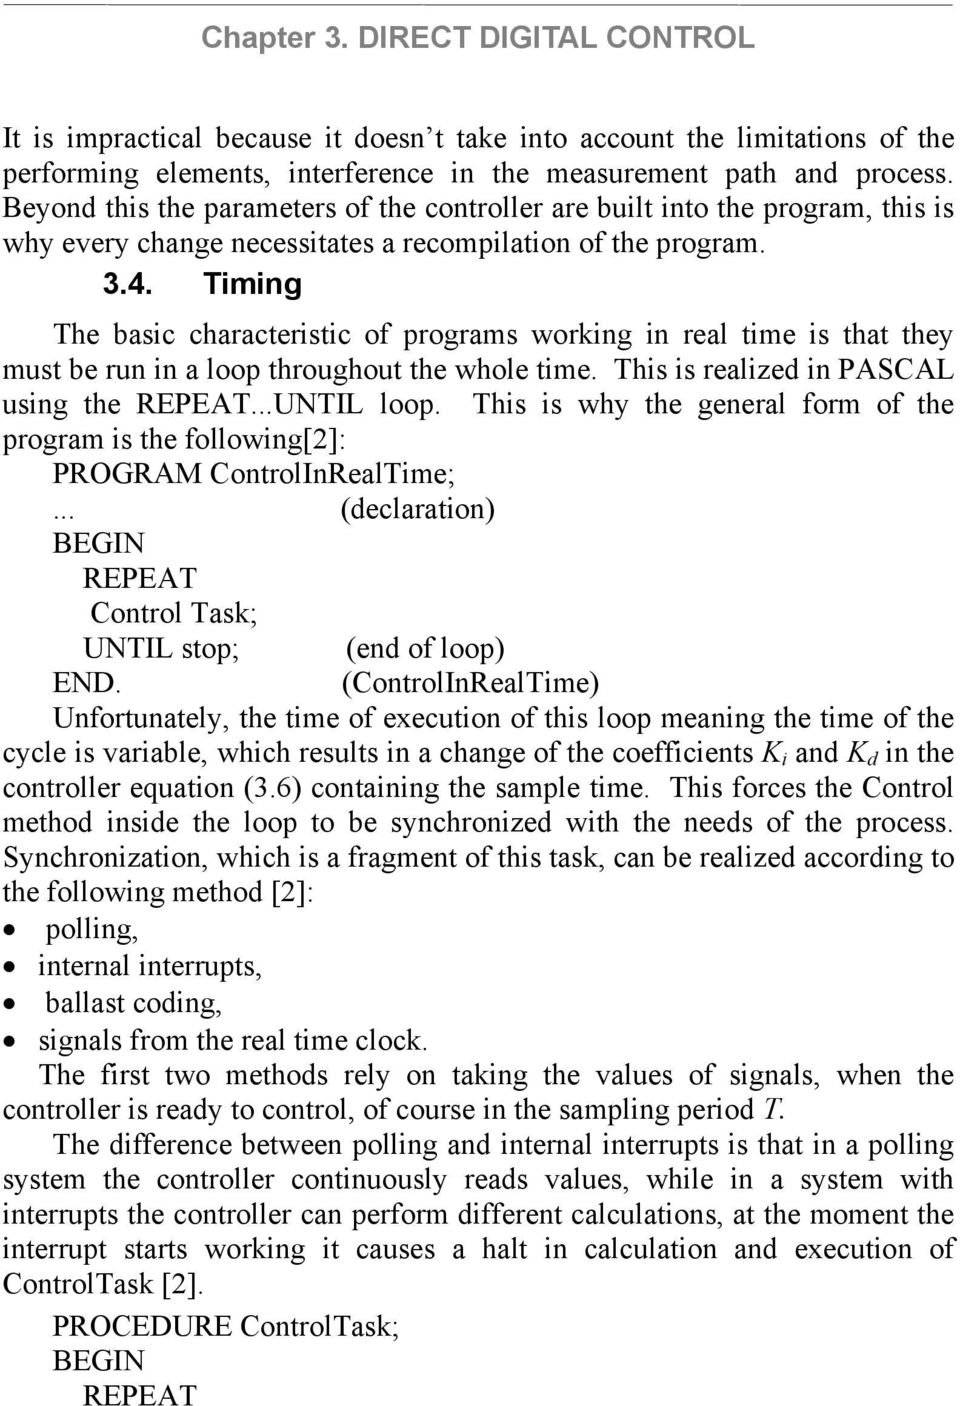 iming he basic characteristic of programs working in real time is that they must be run in a loop throughout the whole time. his is realized in PASCAL using the REPEA...UNIL loop.